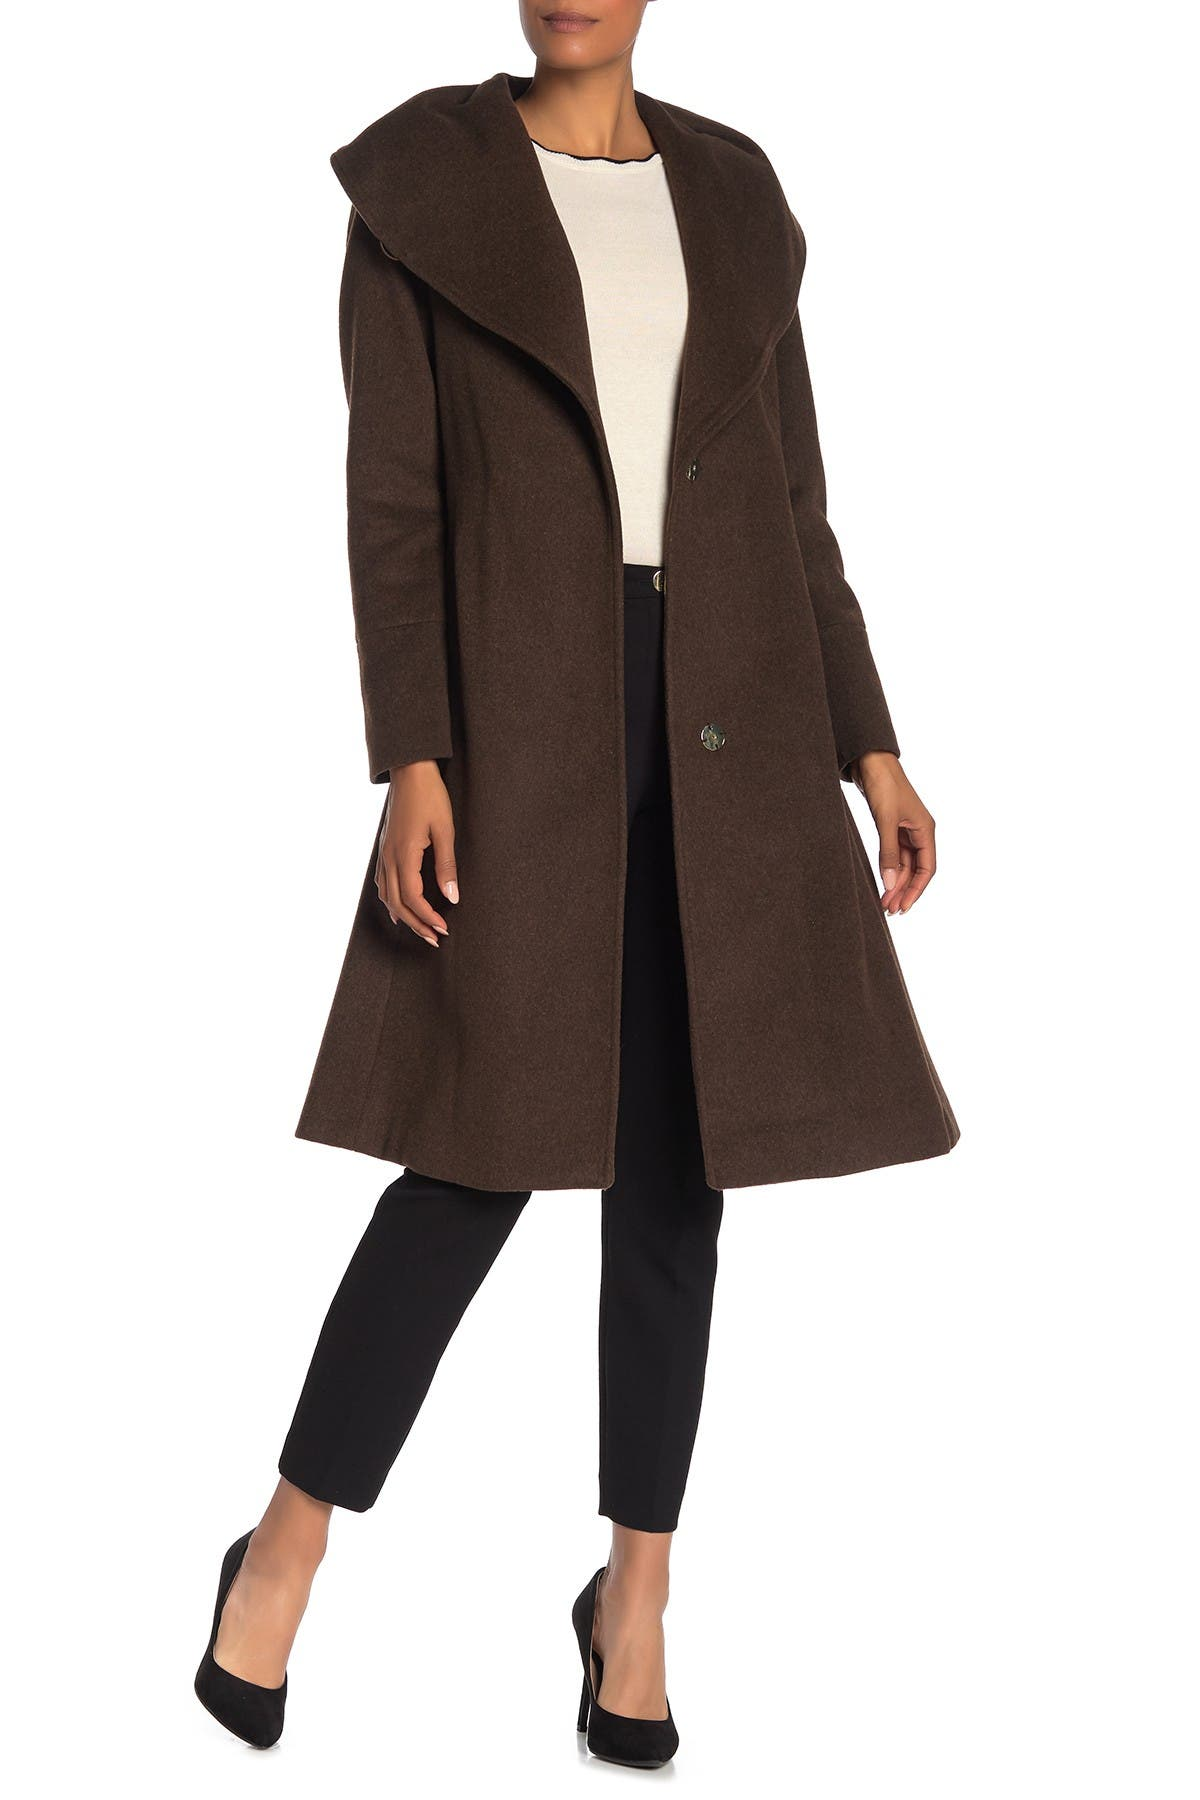 Image of Cole Haan Wool Blend Shawl Collar Belted Coat